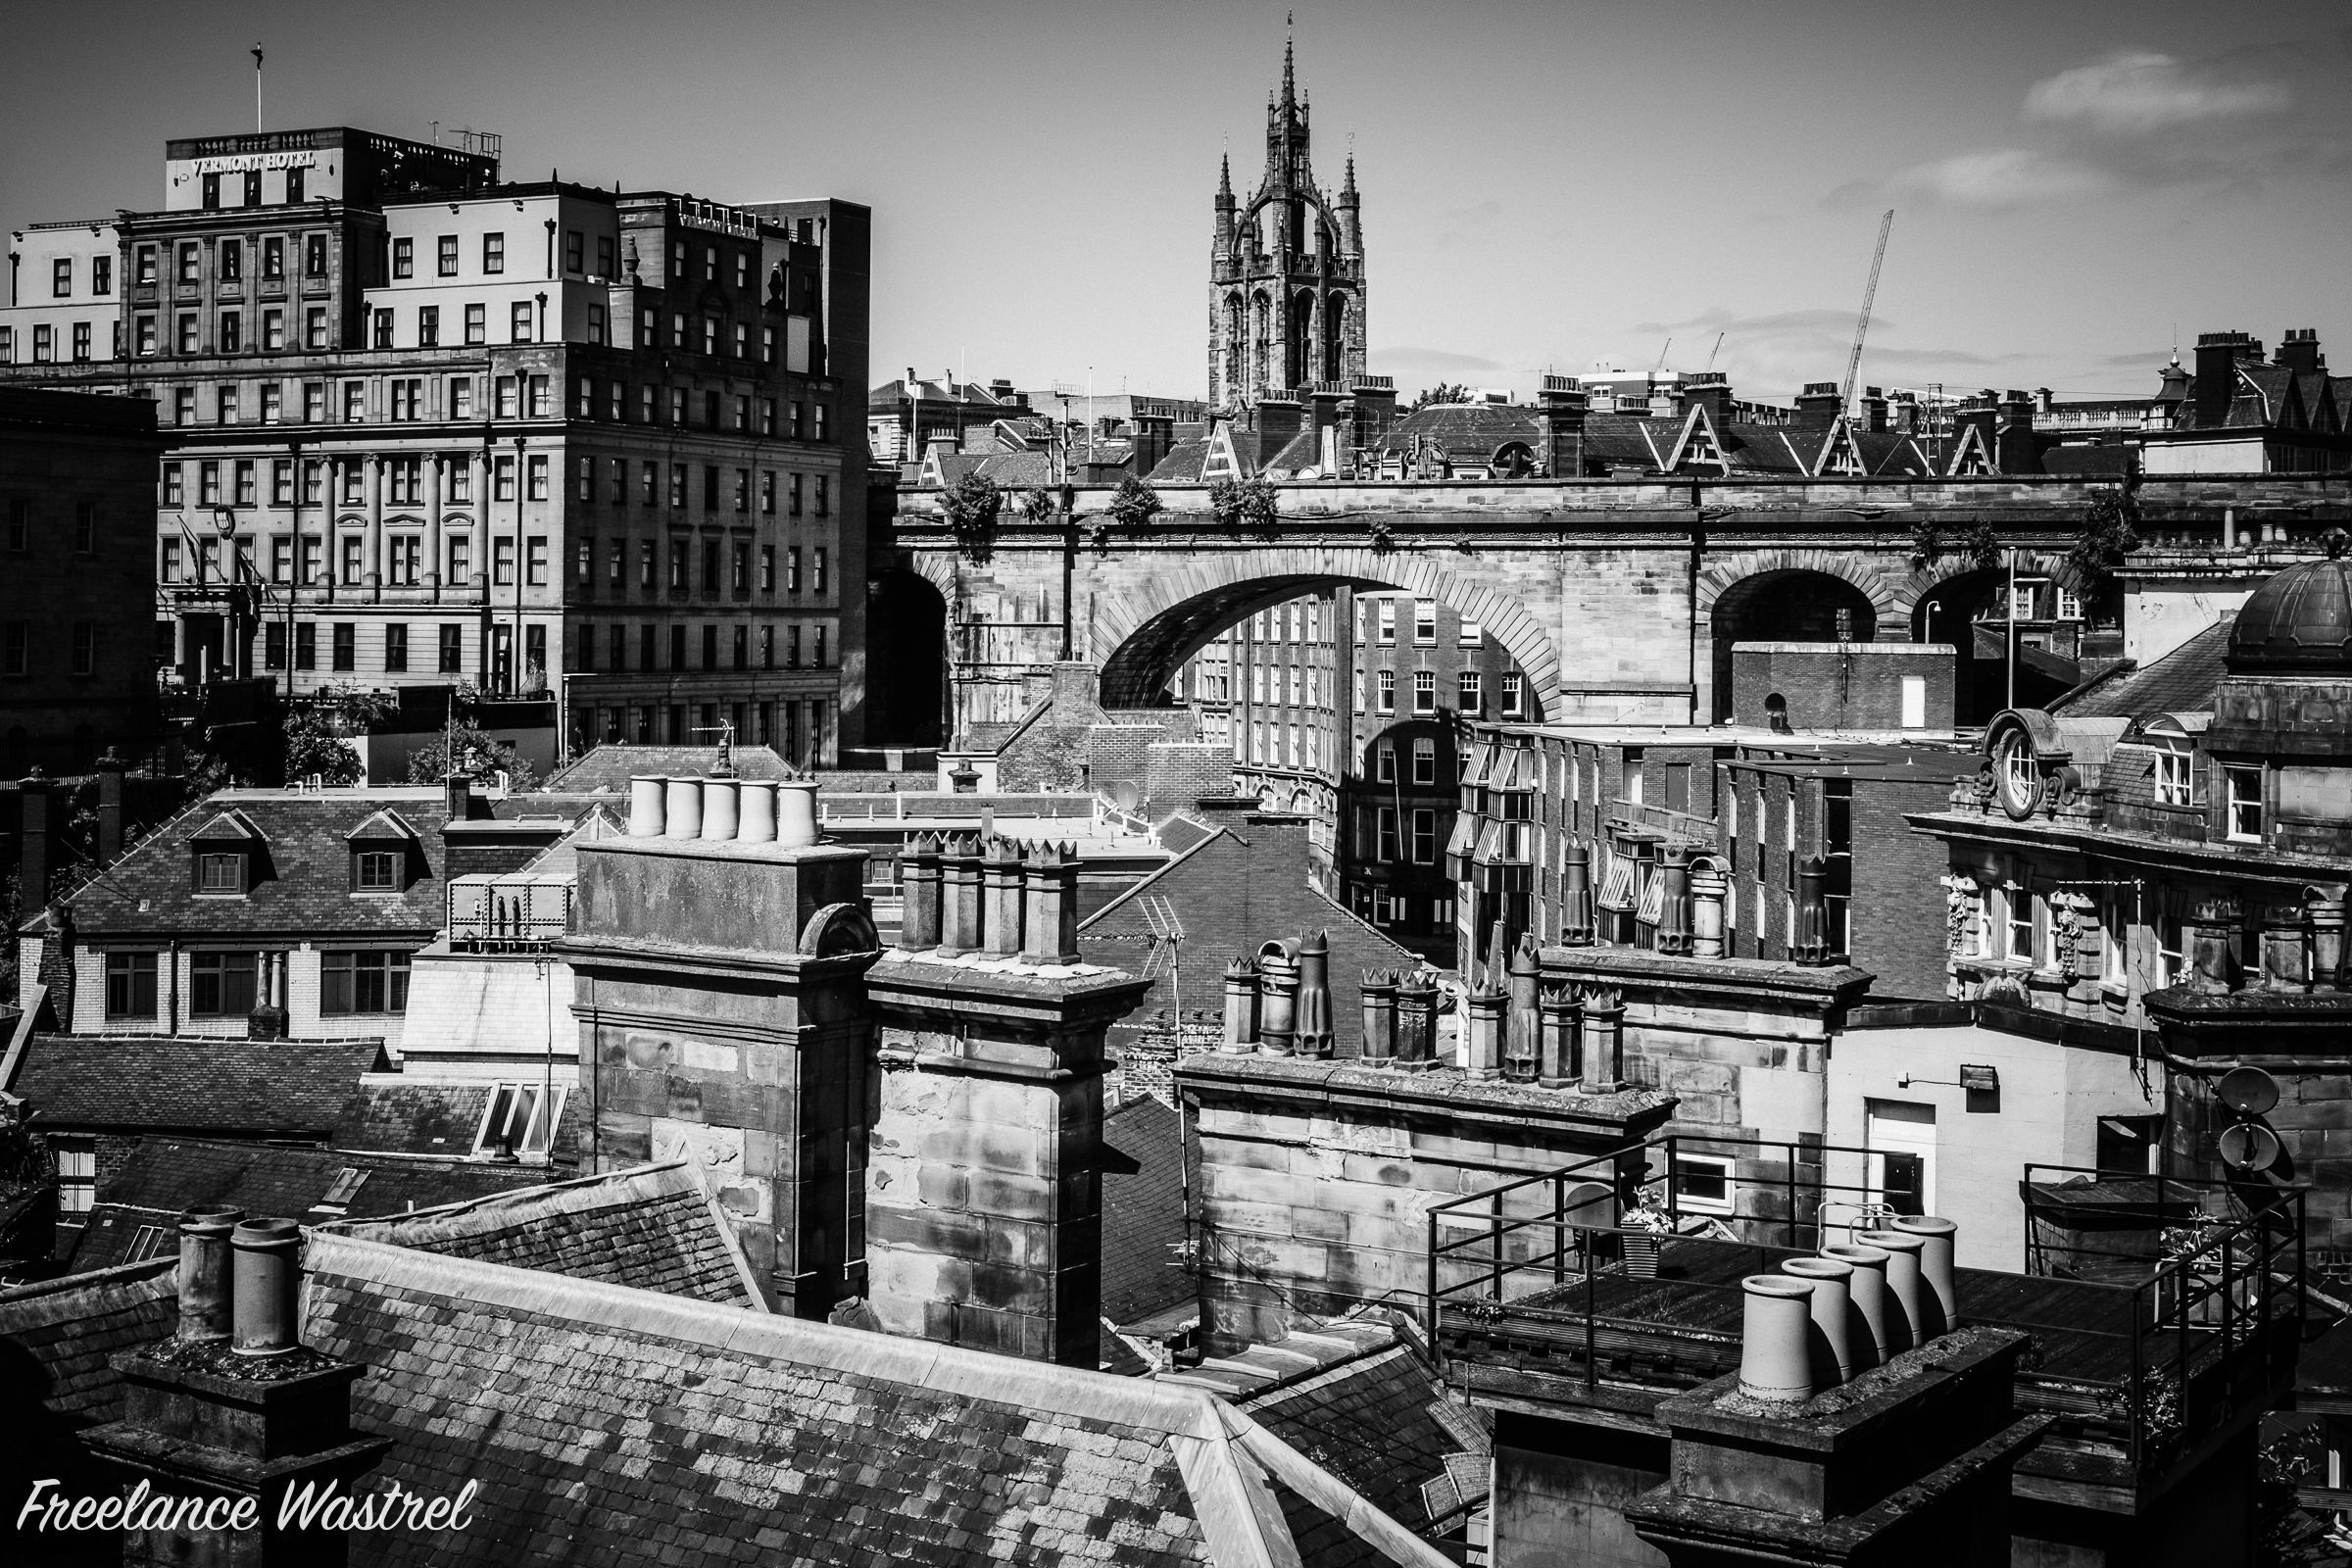 Newcastle upon Tyne, June 2015